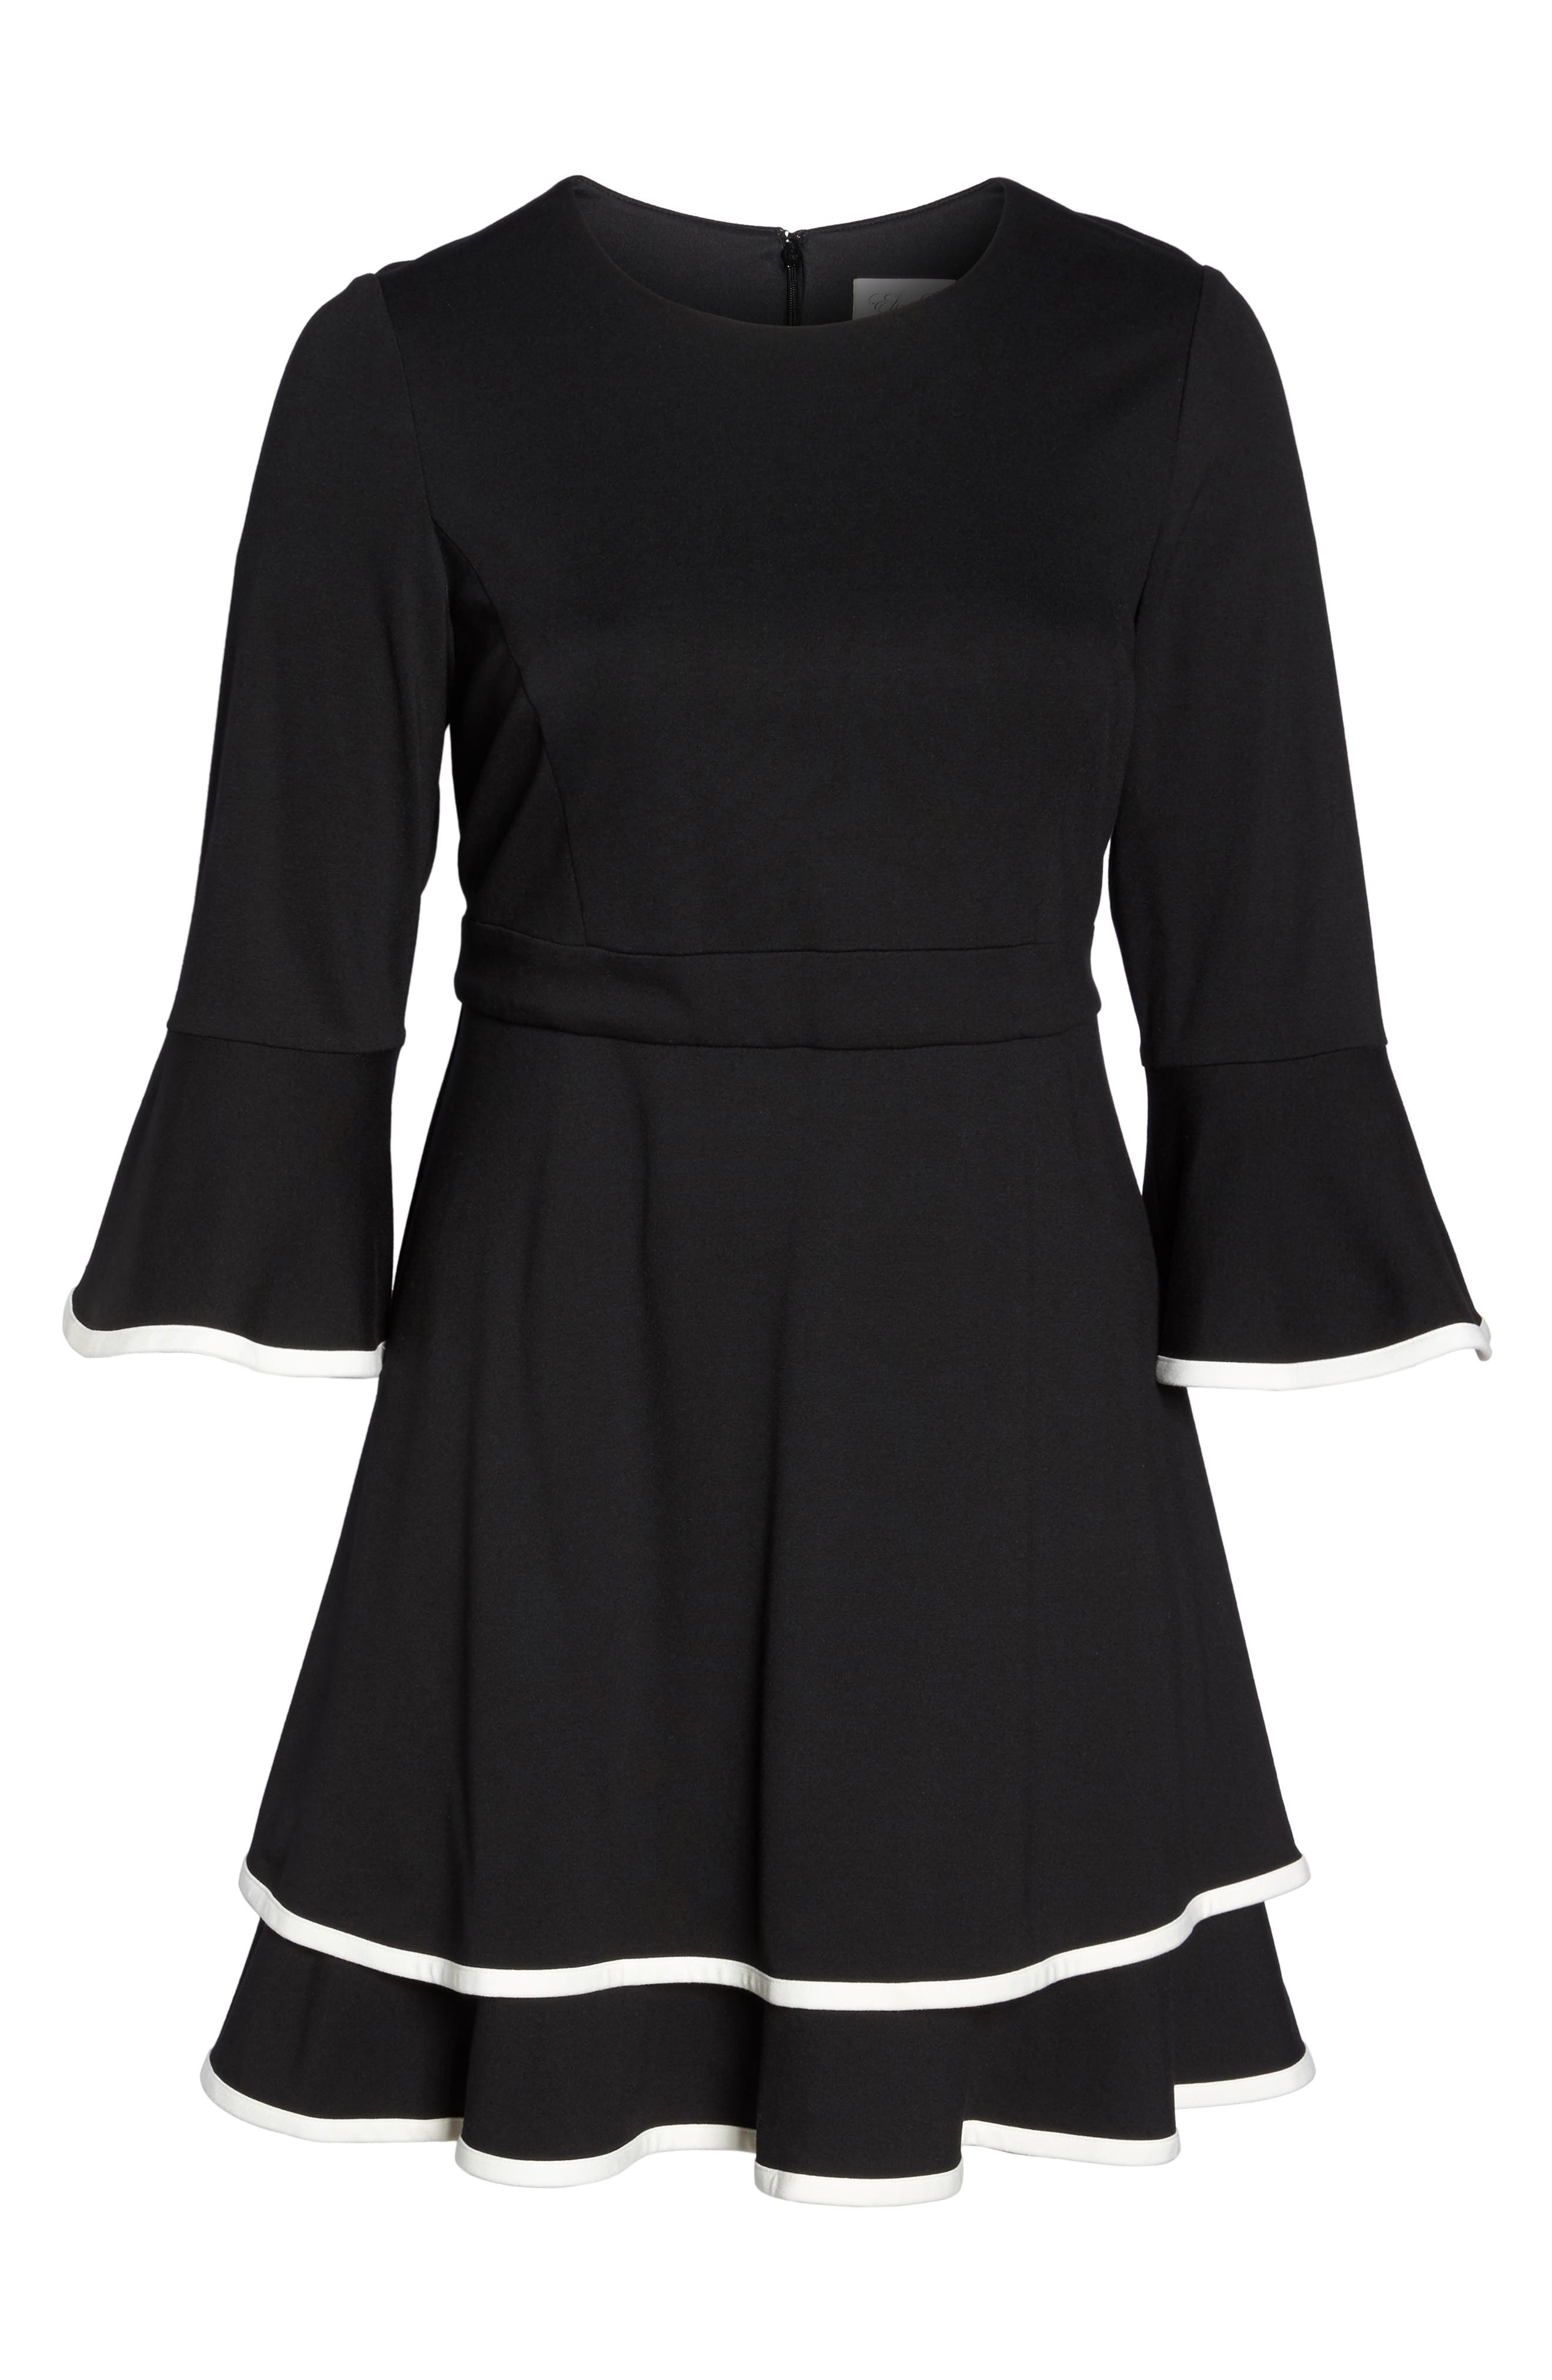 ELIZA J, Bell Sleeve Tiered Fit & Flare Dress, Alternate thumbnail 6, color, 003